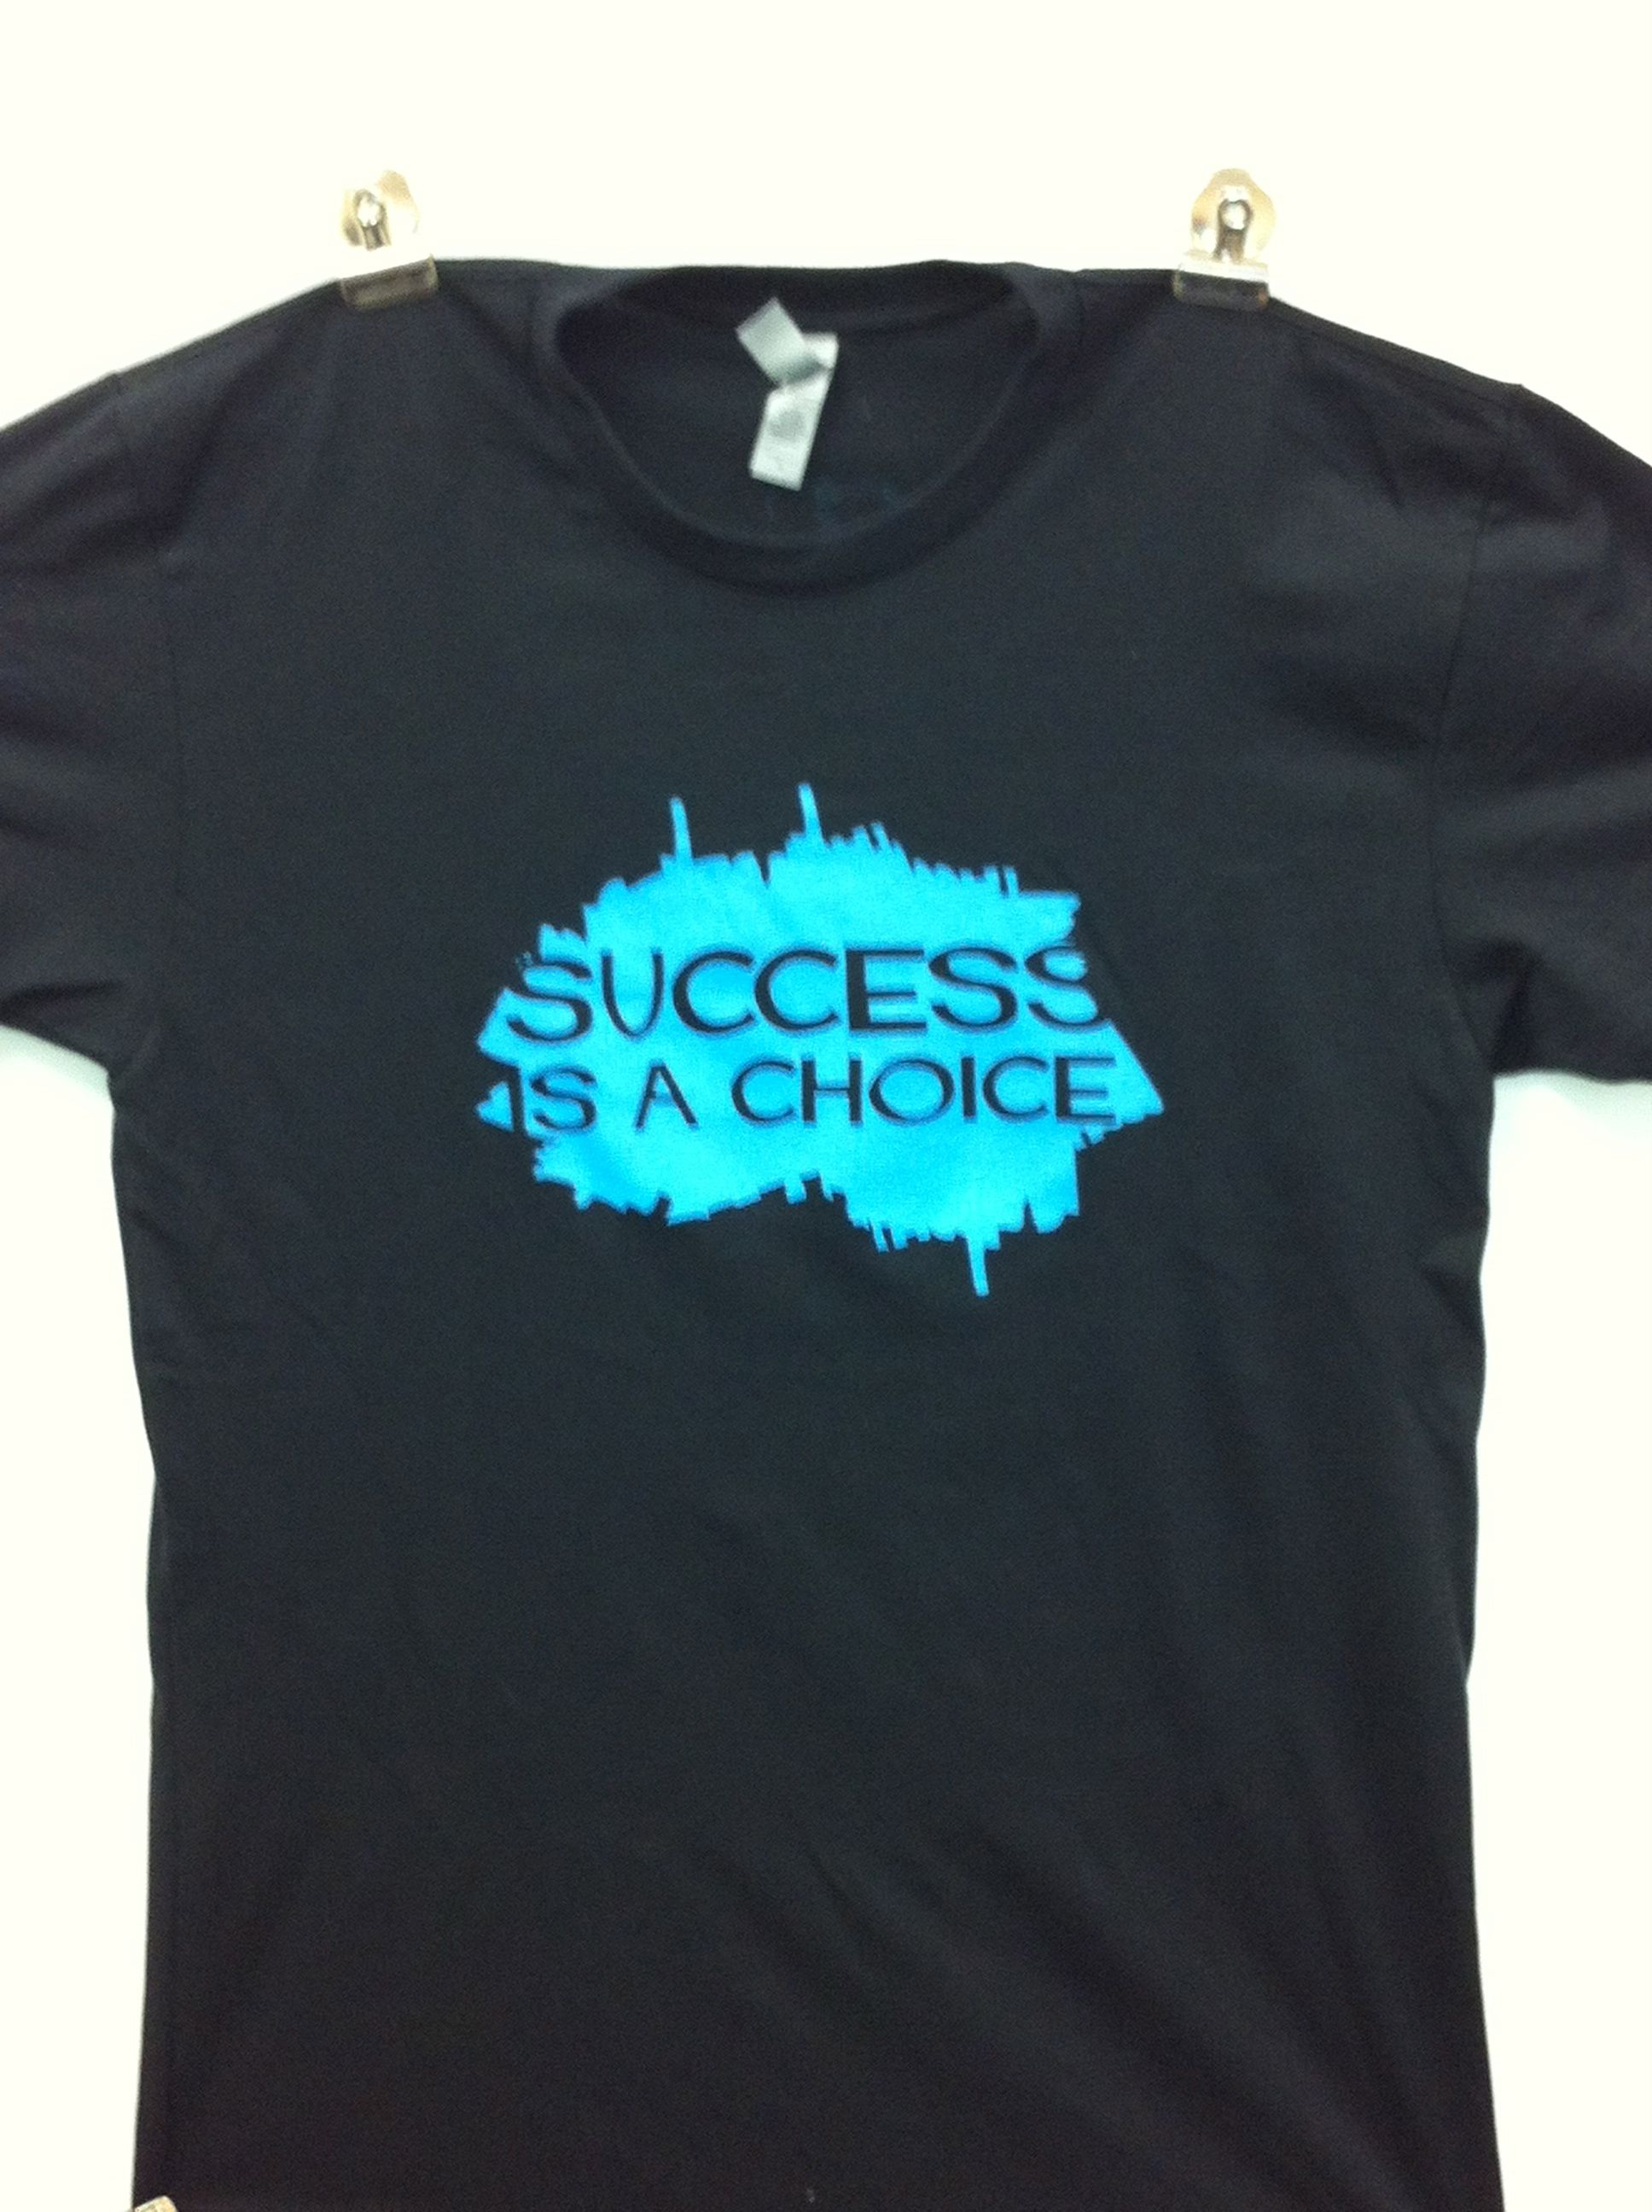 First edition black 60% cotton, 40% polyester. Success is a choice. Site will be ready by friday. :)